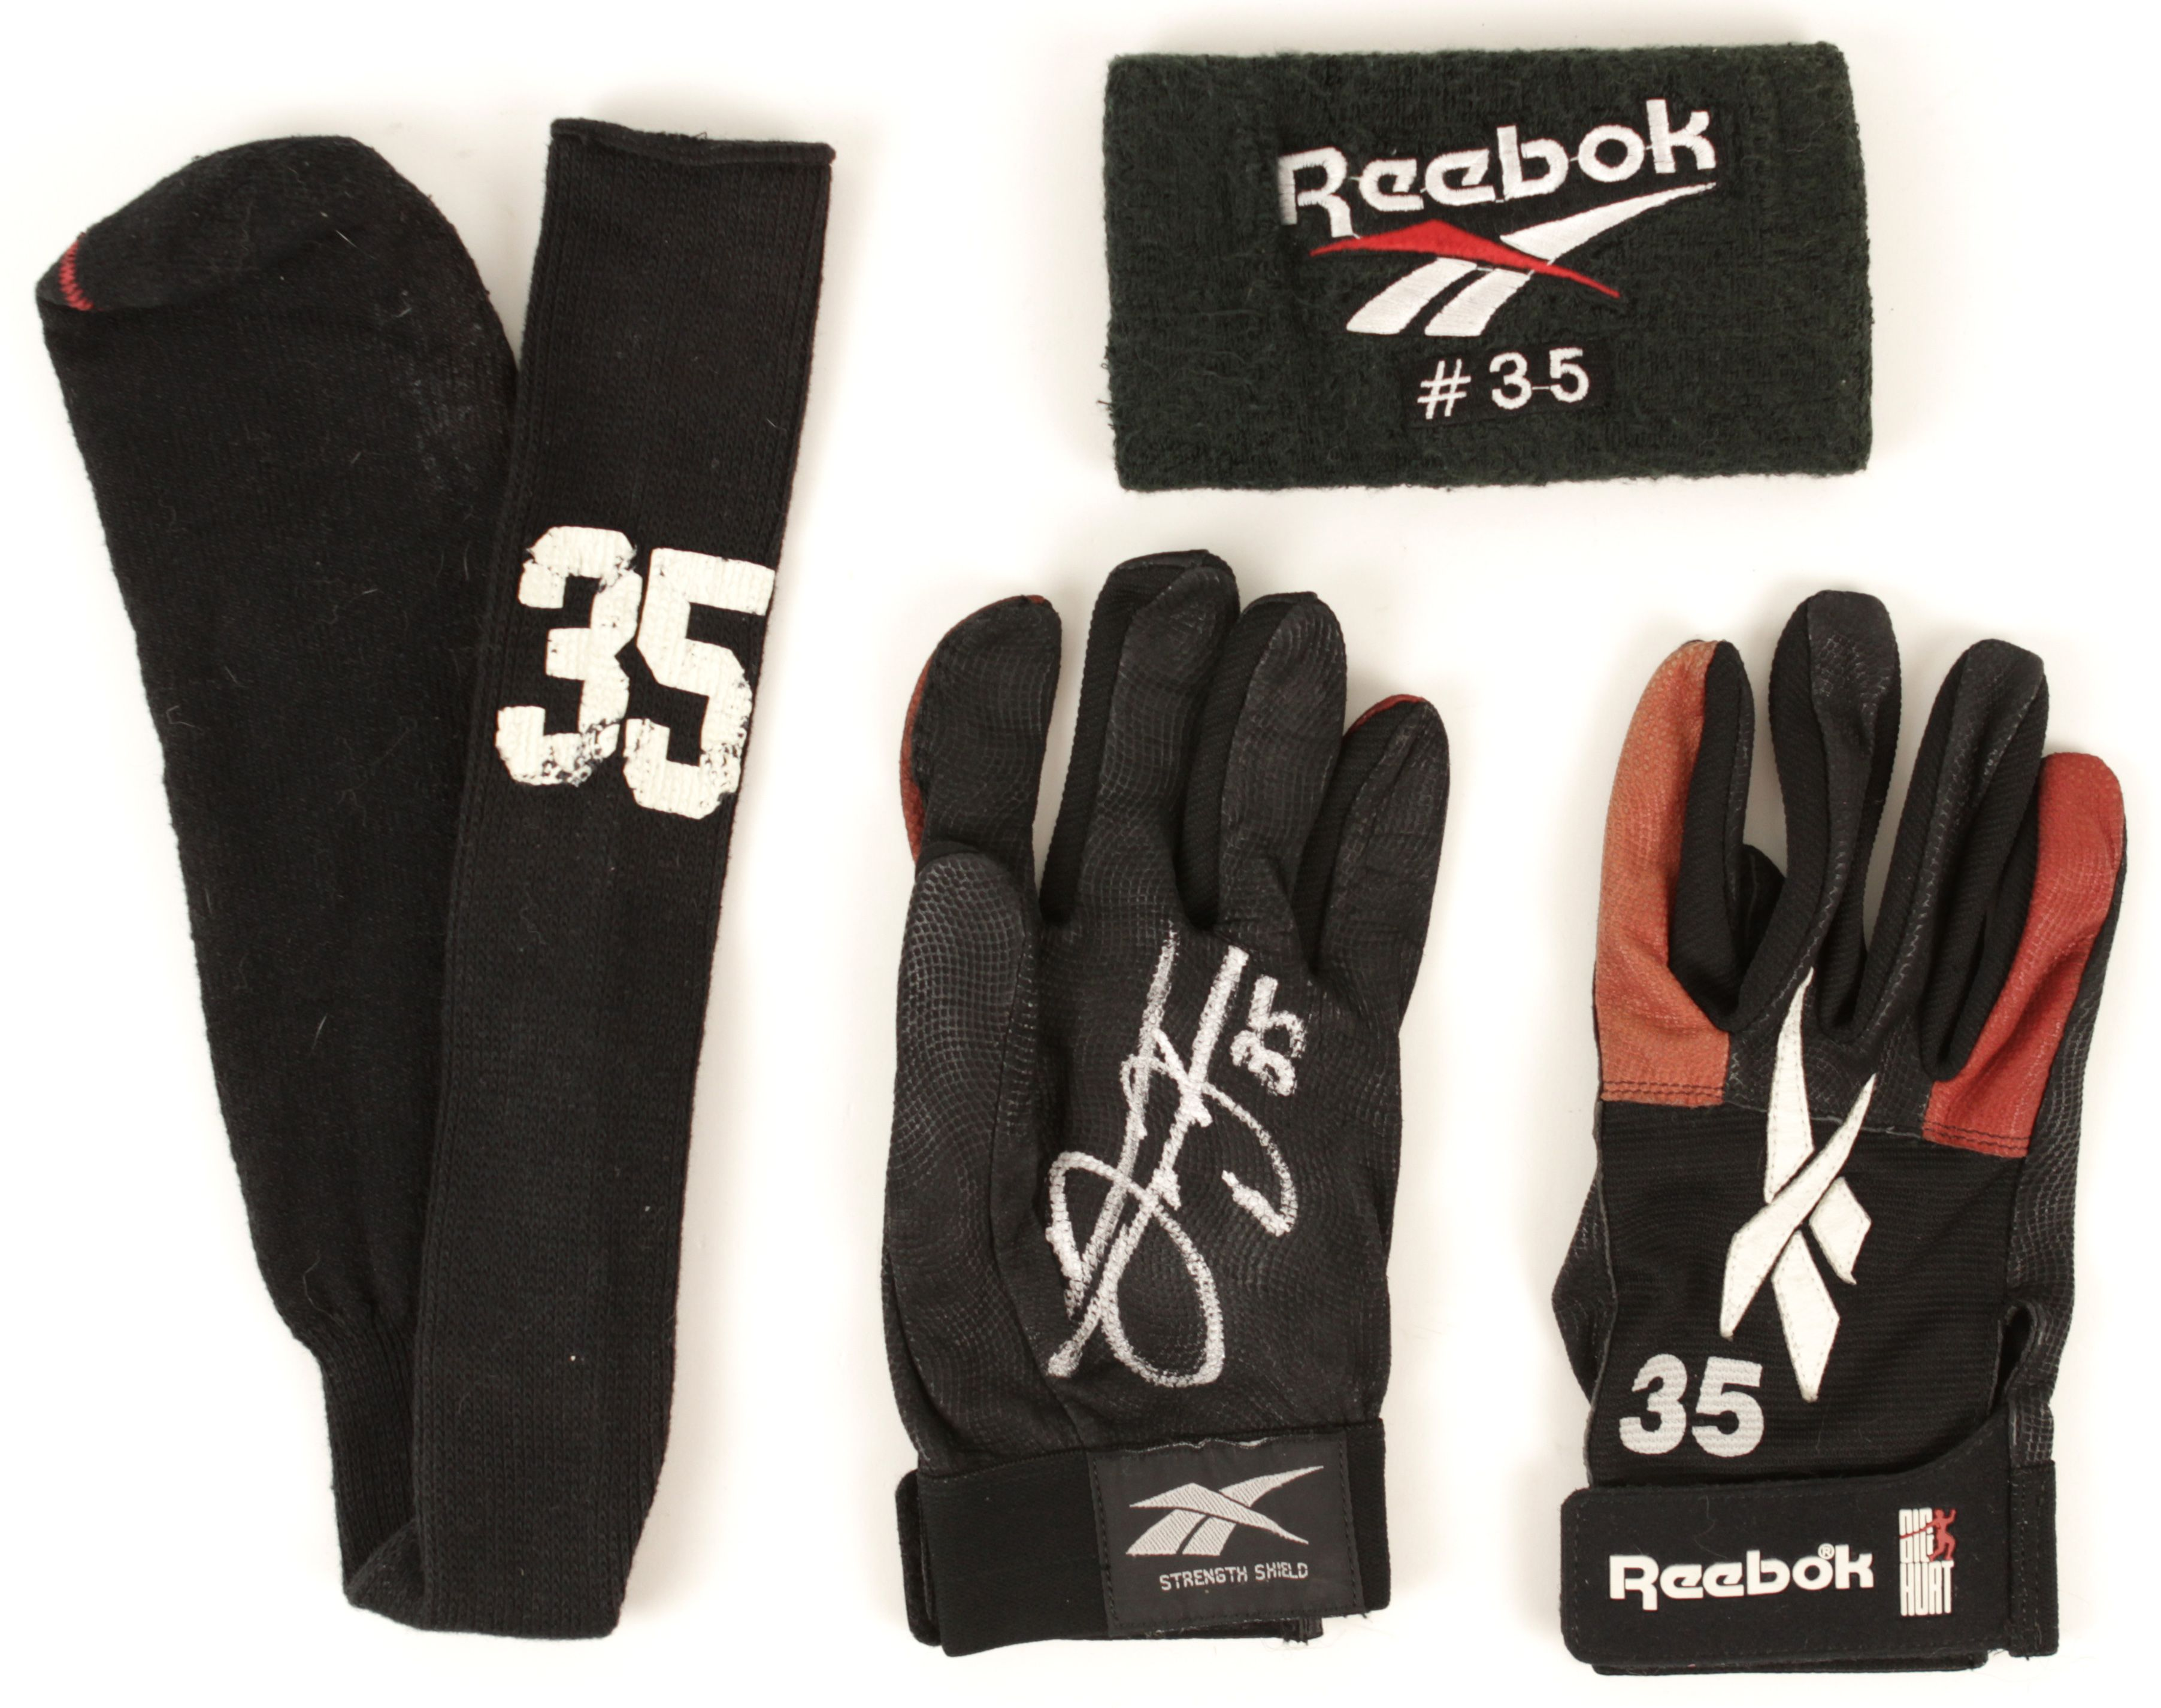 baf6544d1ef 1998 Frank Thomas Chicago White Sox Game Worn Batting Gloves Sock    Wristband - With Style. Tap to expand